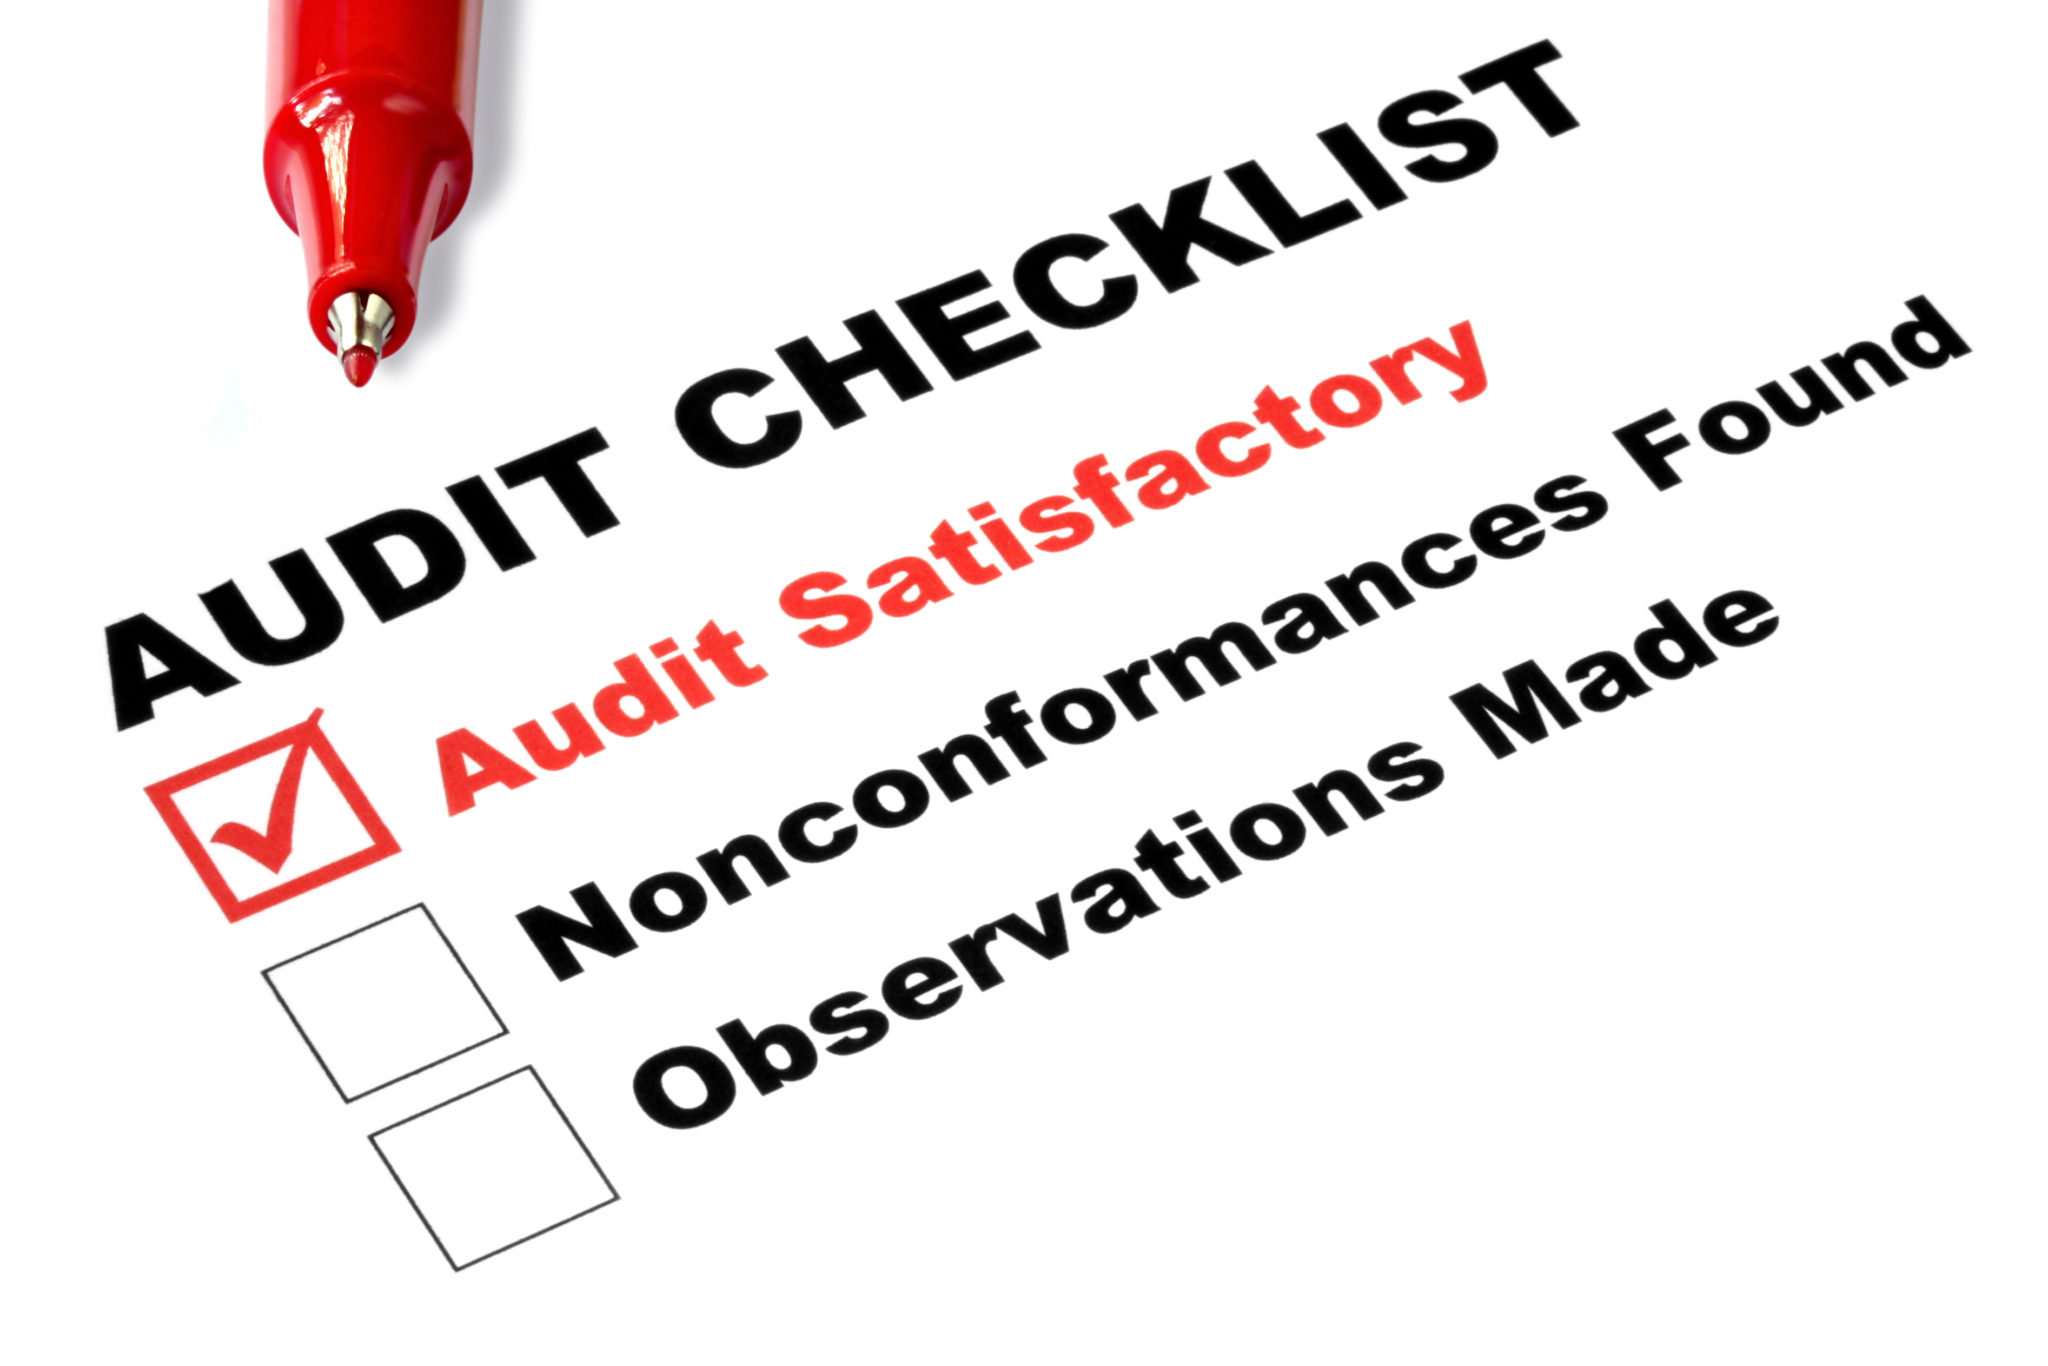 Managing Third Party Audits